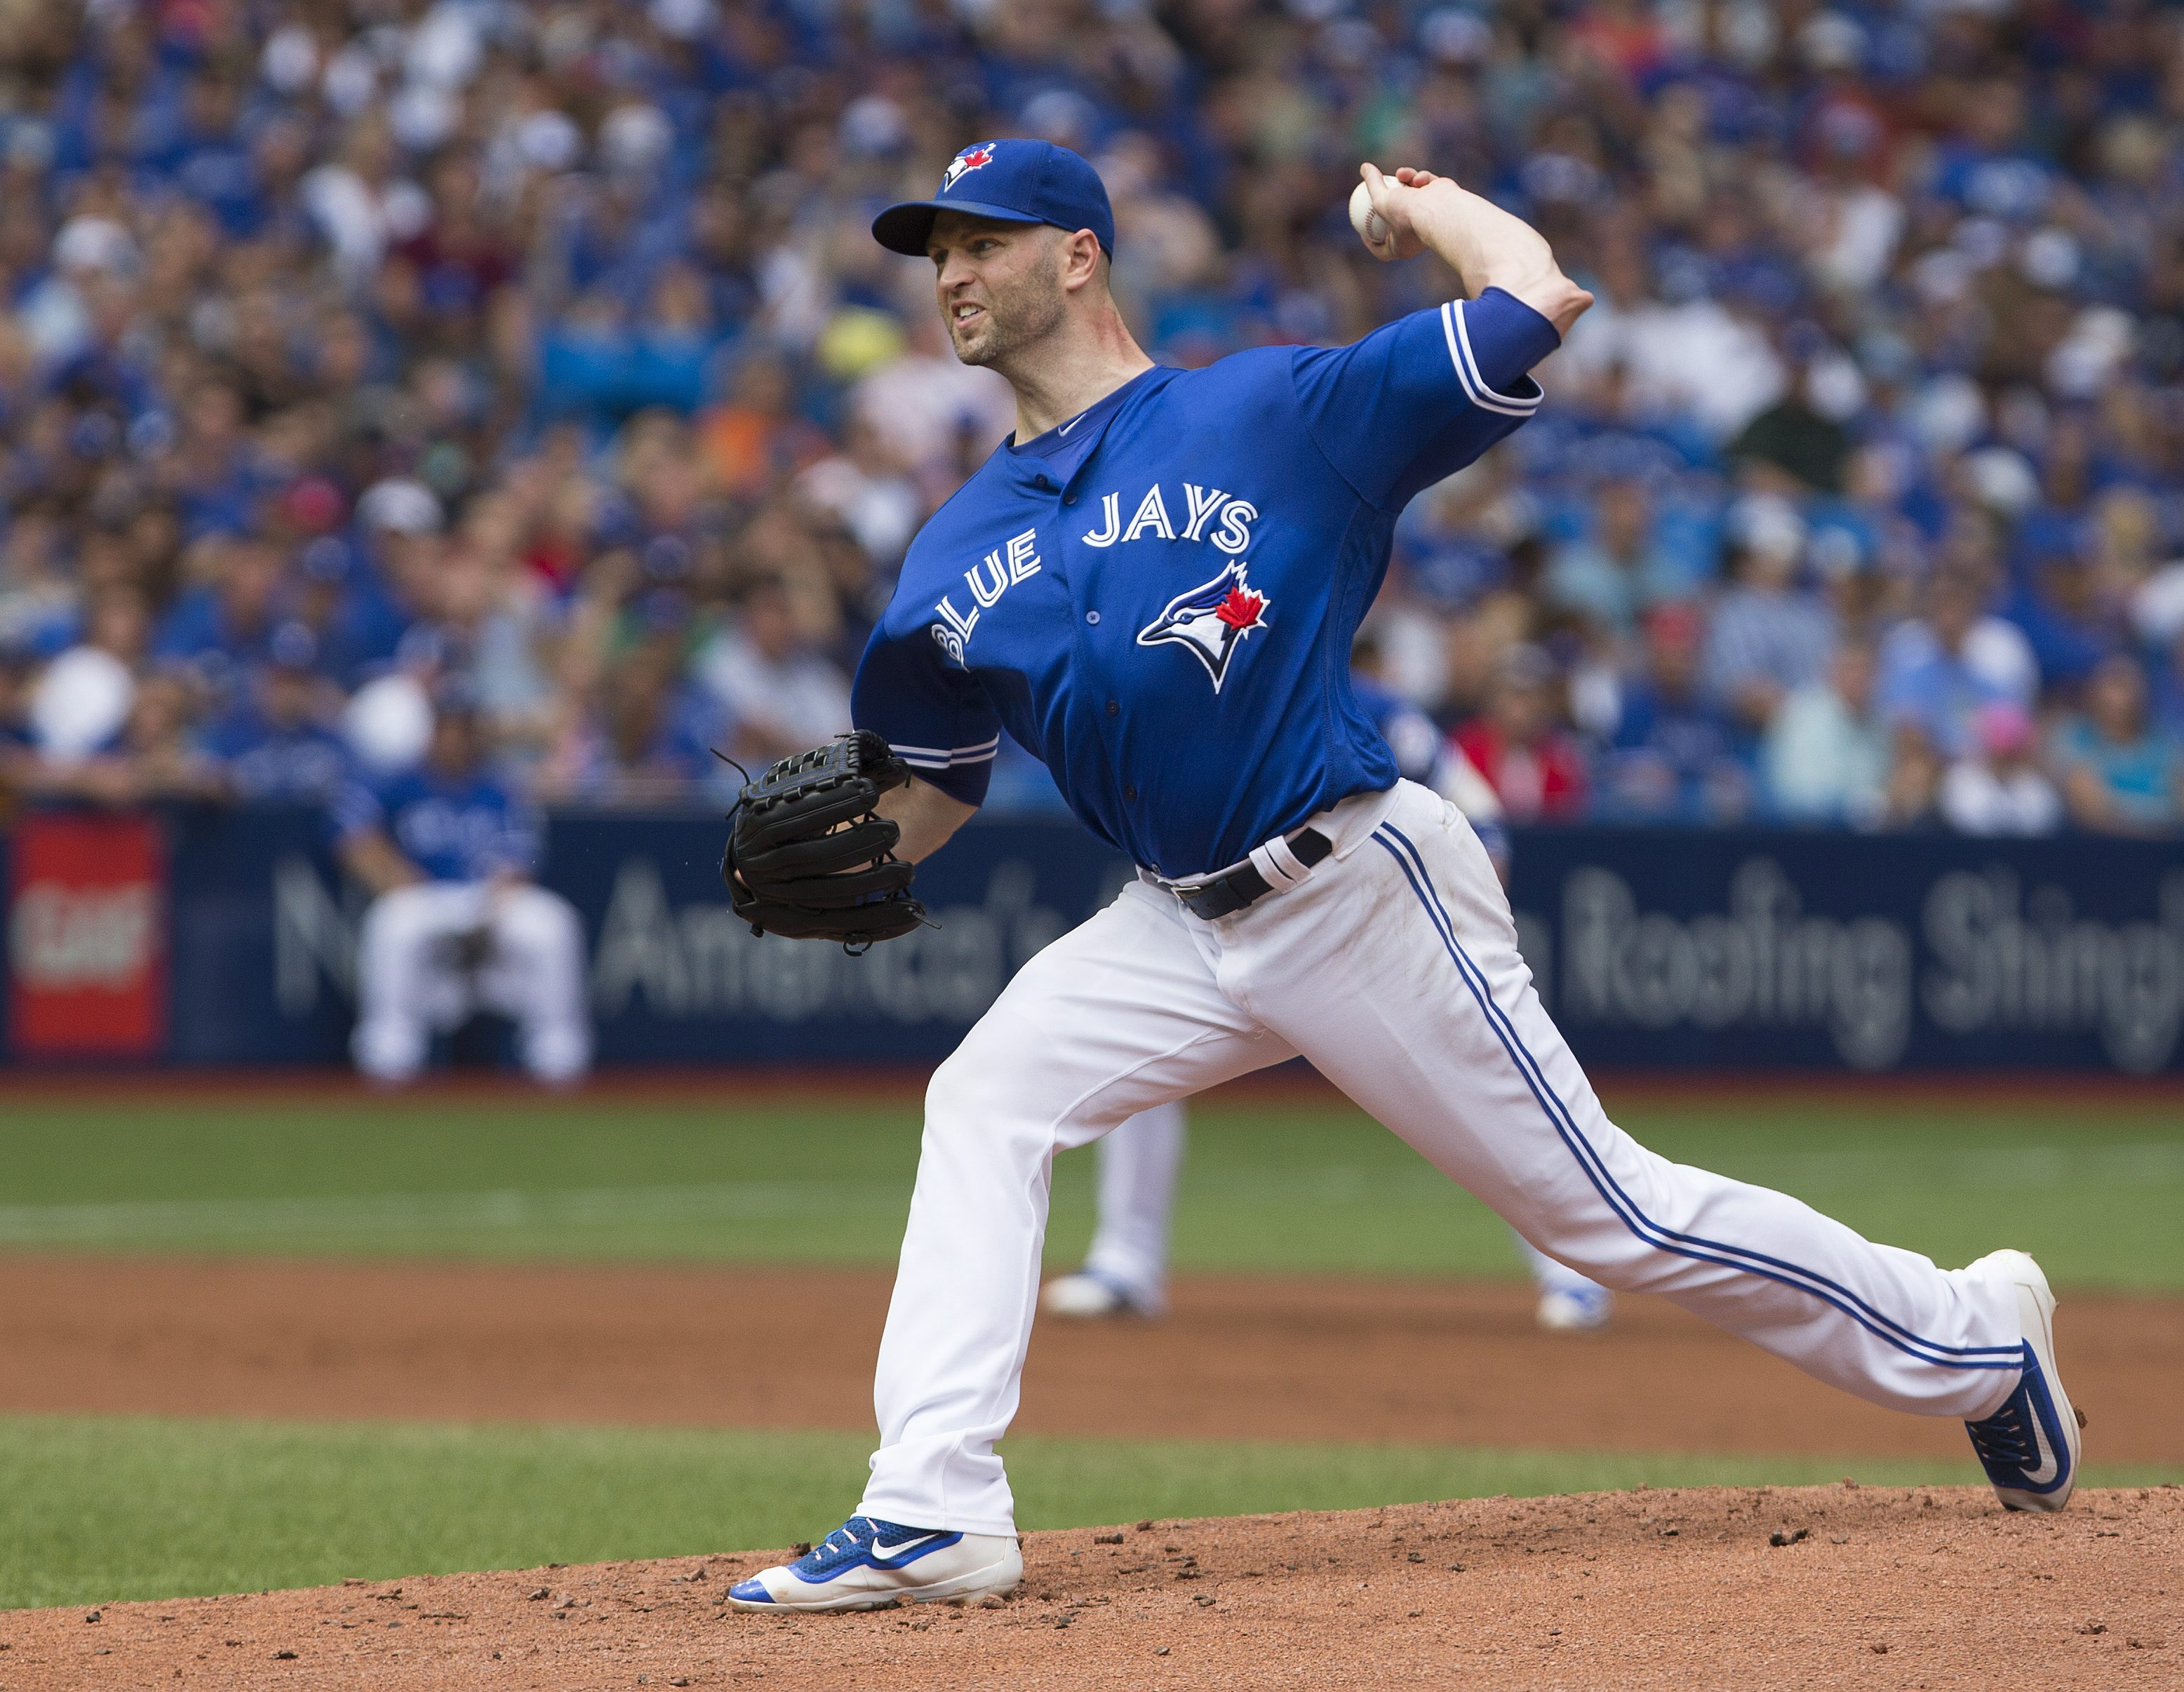 Toronto Blue Jays starting pitcher J.A. Happ (33) delivers a pitch against the Boston Red Sox during the second inning of a baseball game in Toronto, Saturday, Sept. 10, 2016. (Peter Power/The Canadian Press via AP)